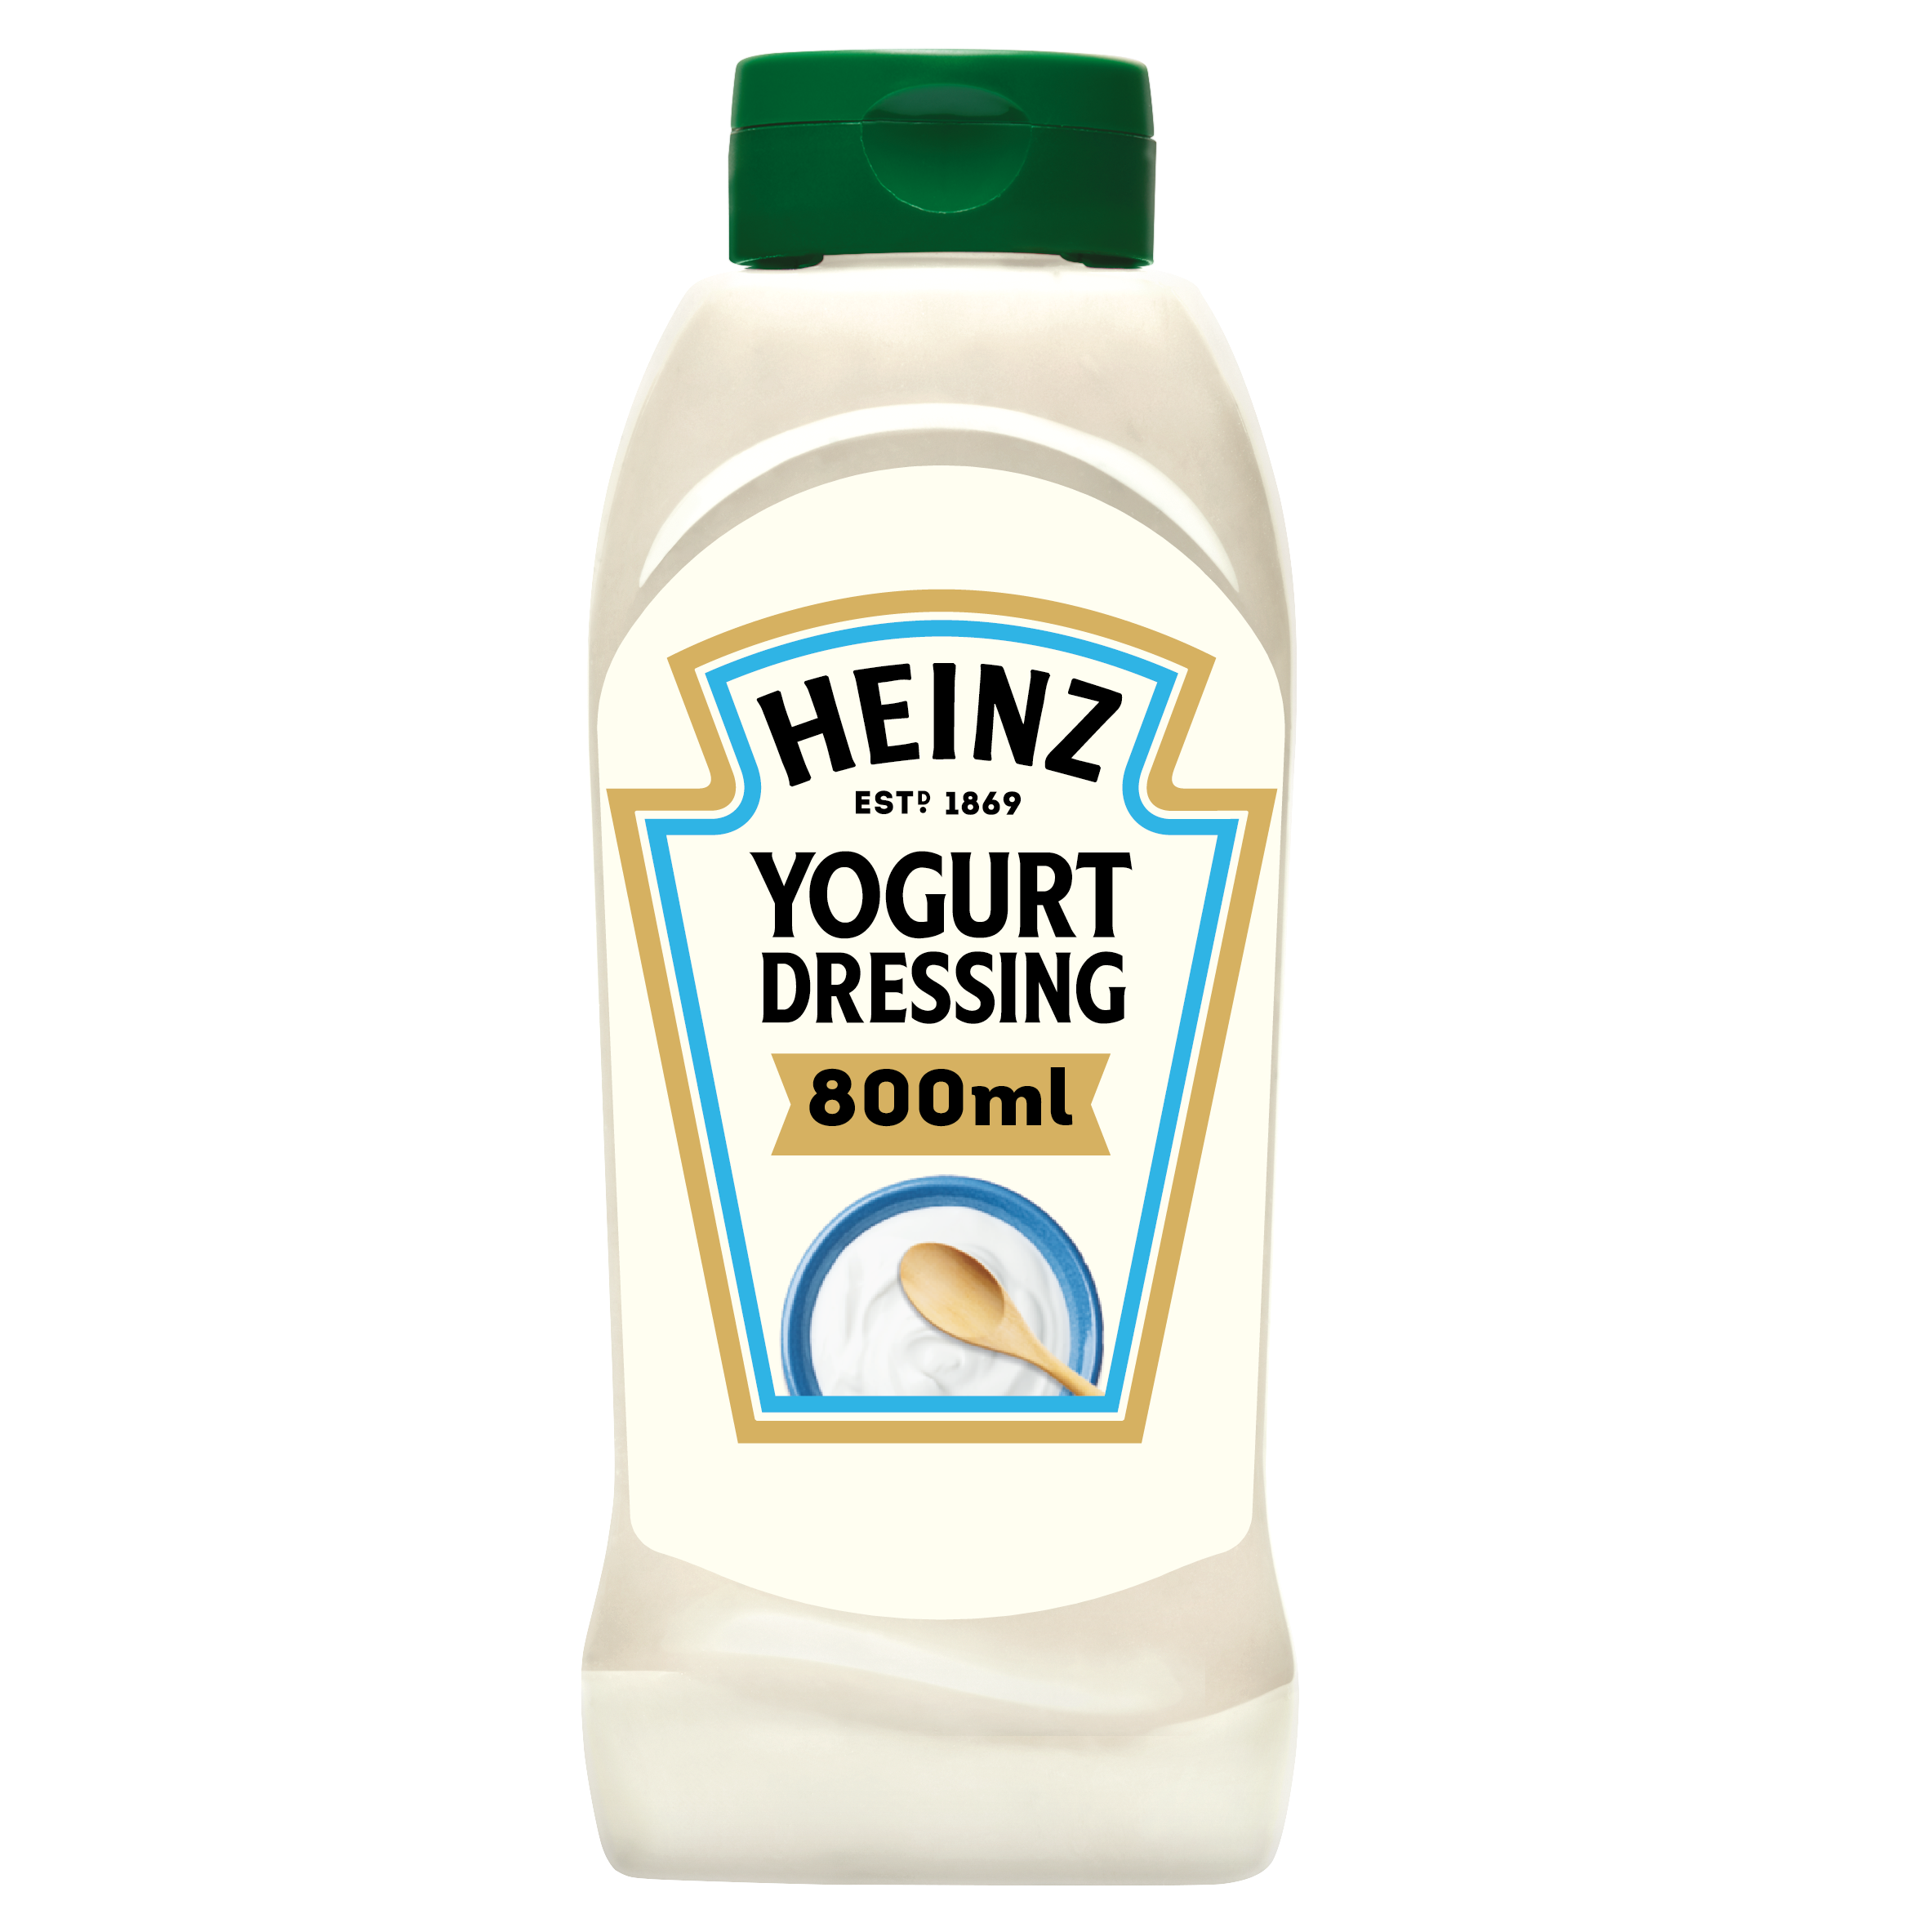 Heinz yoghurt dressing800ml